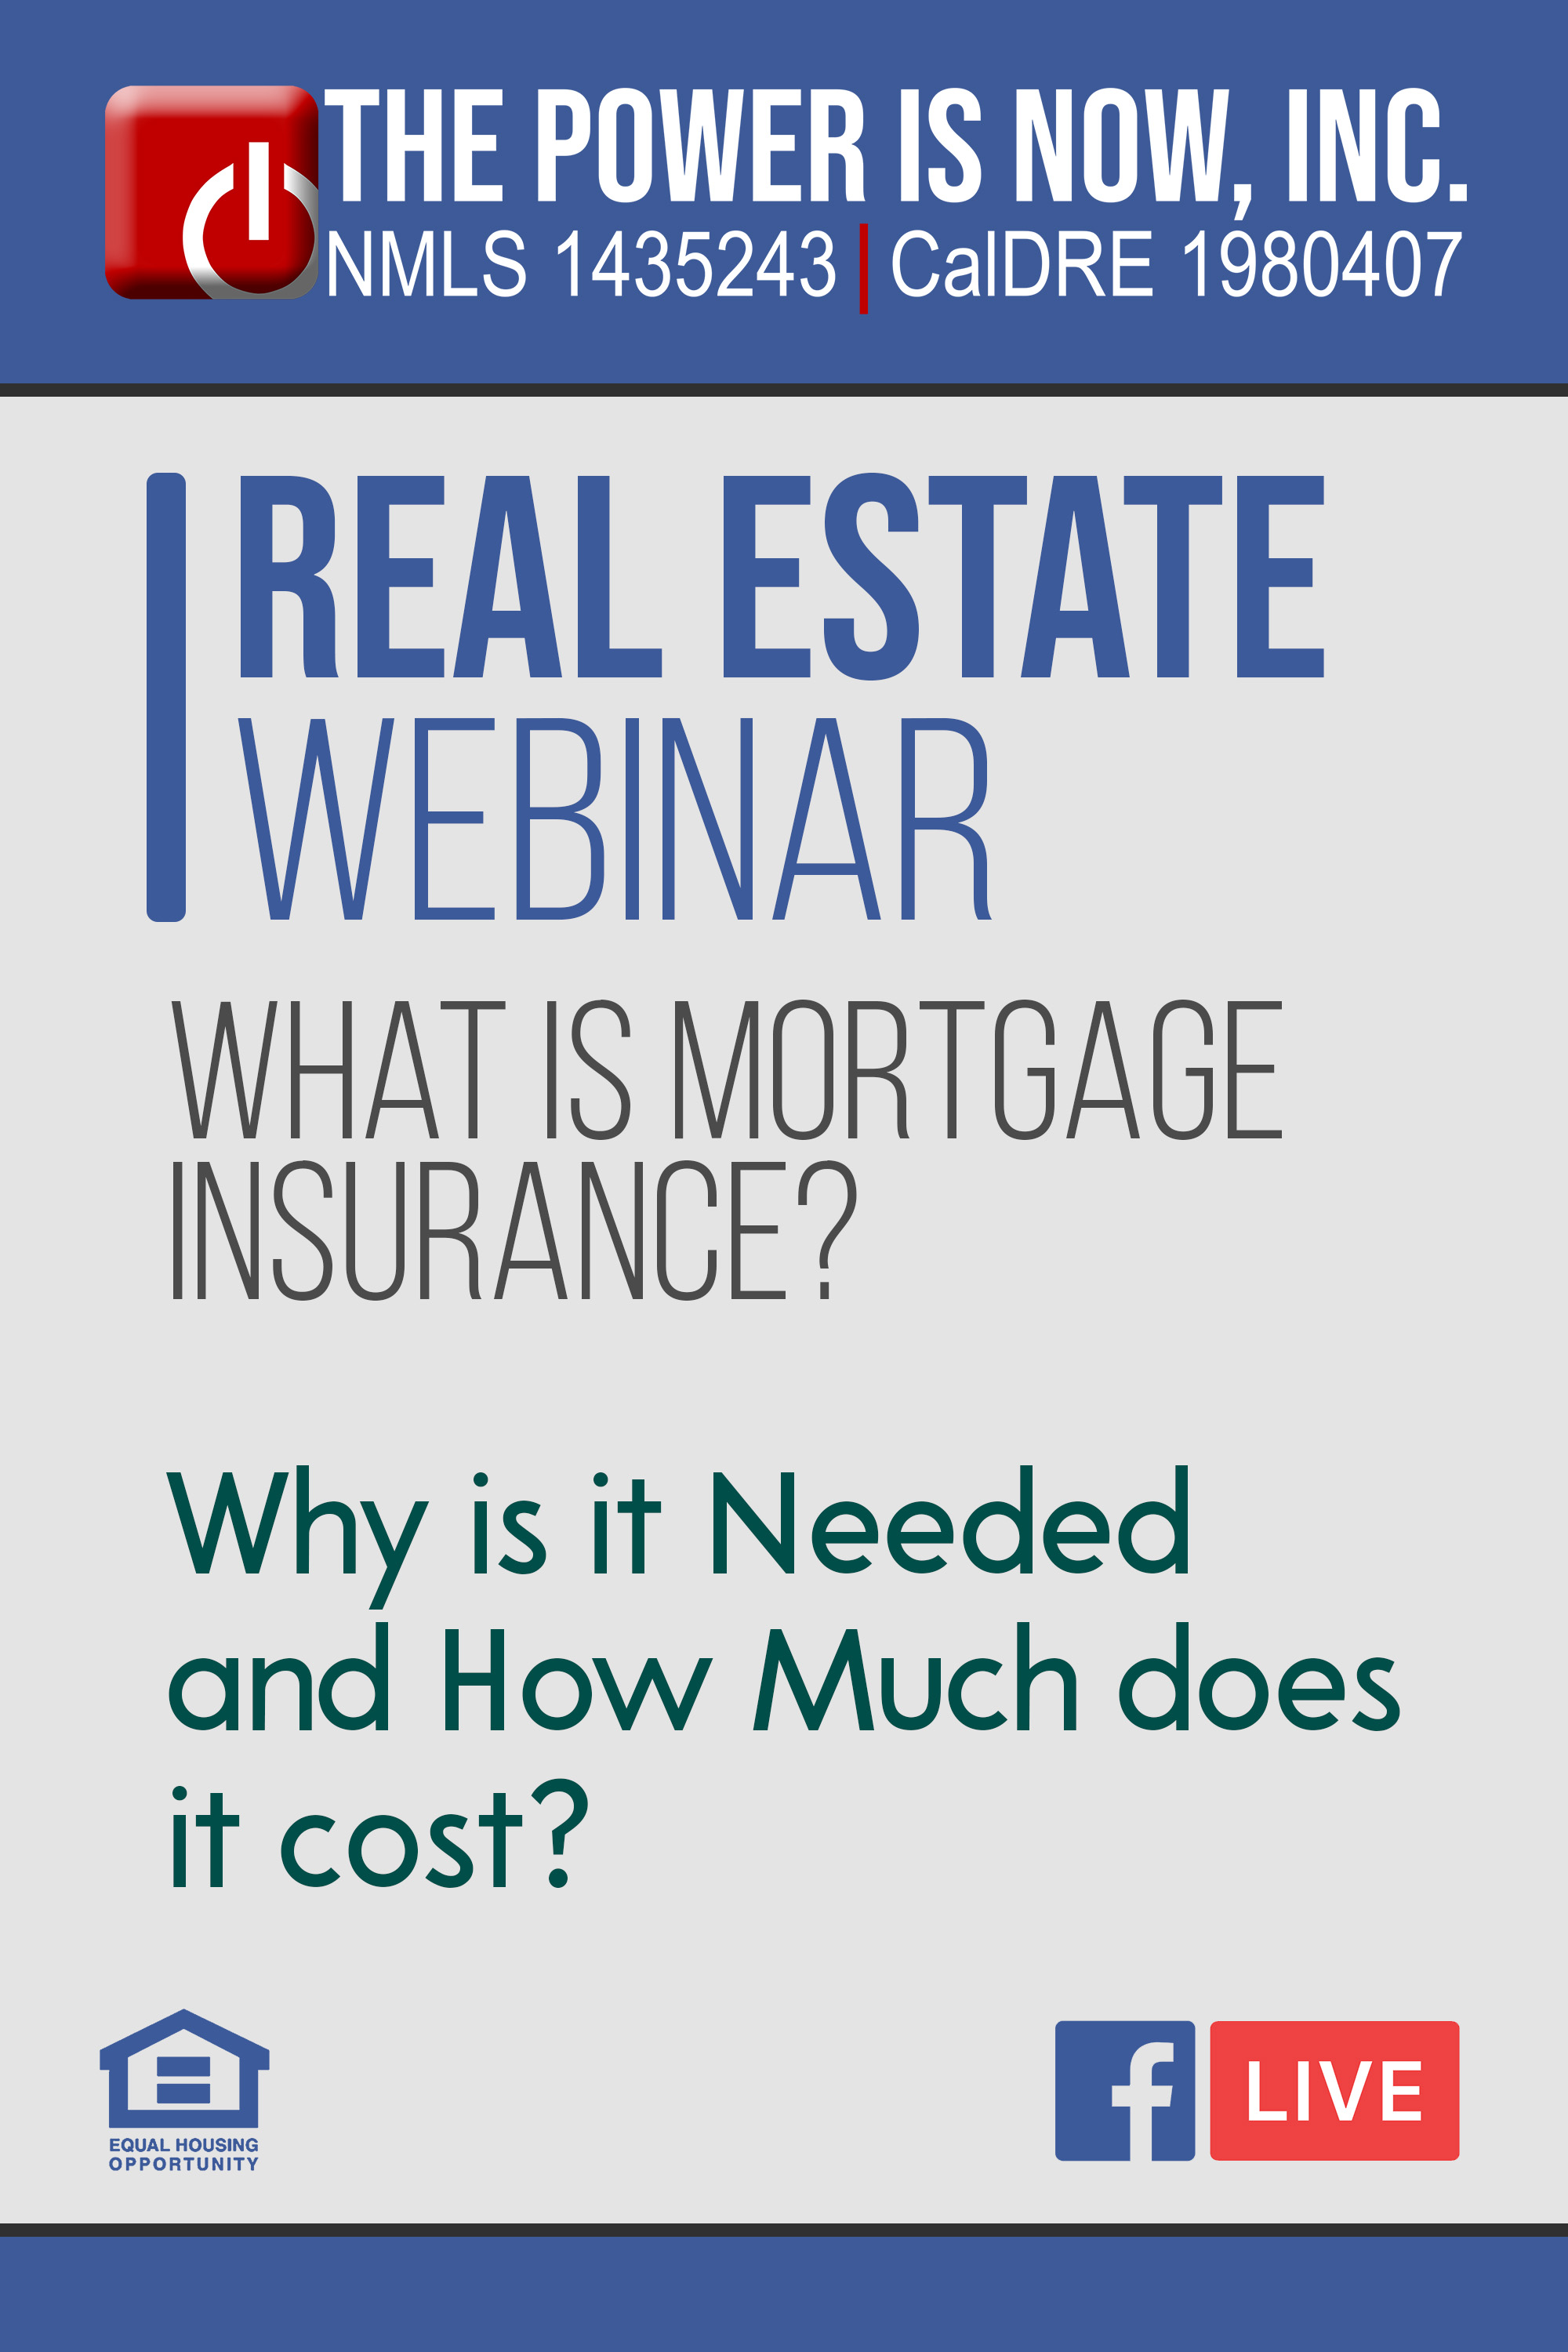 What Is Mortgage Insurance? | Why is it Needed and How Much does it cost?